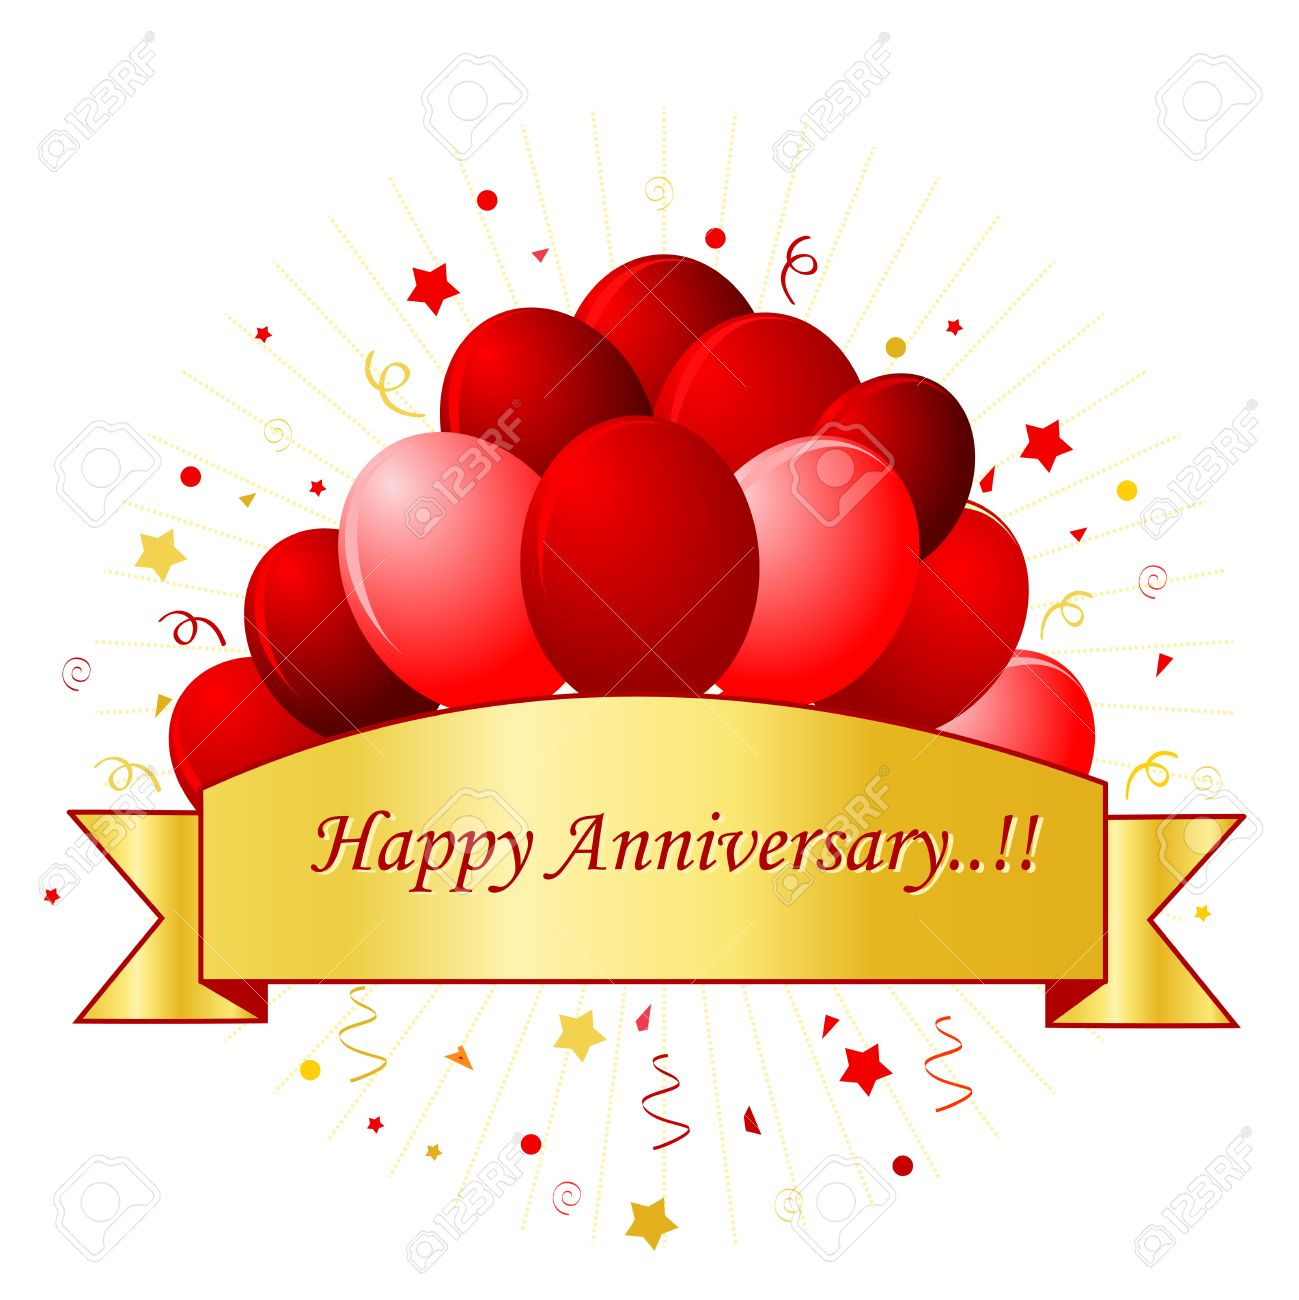 happy anniversary card in red letters with beautiful red balloons and confetti on white background with